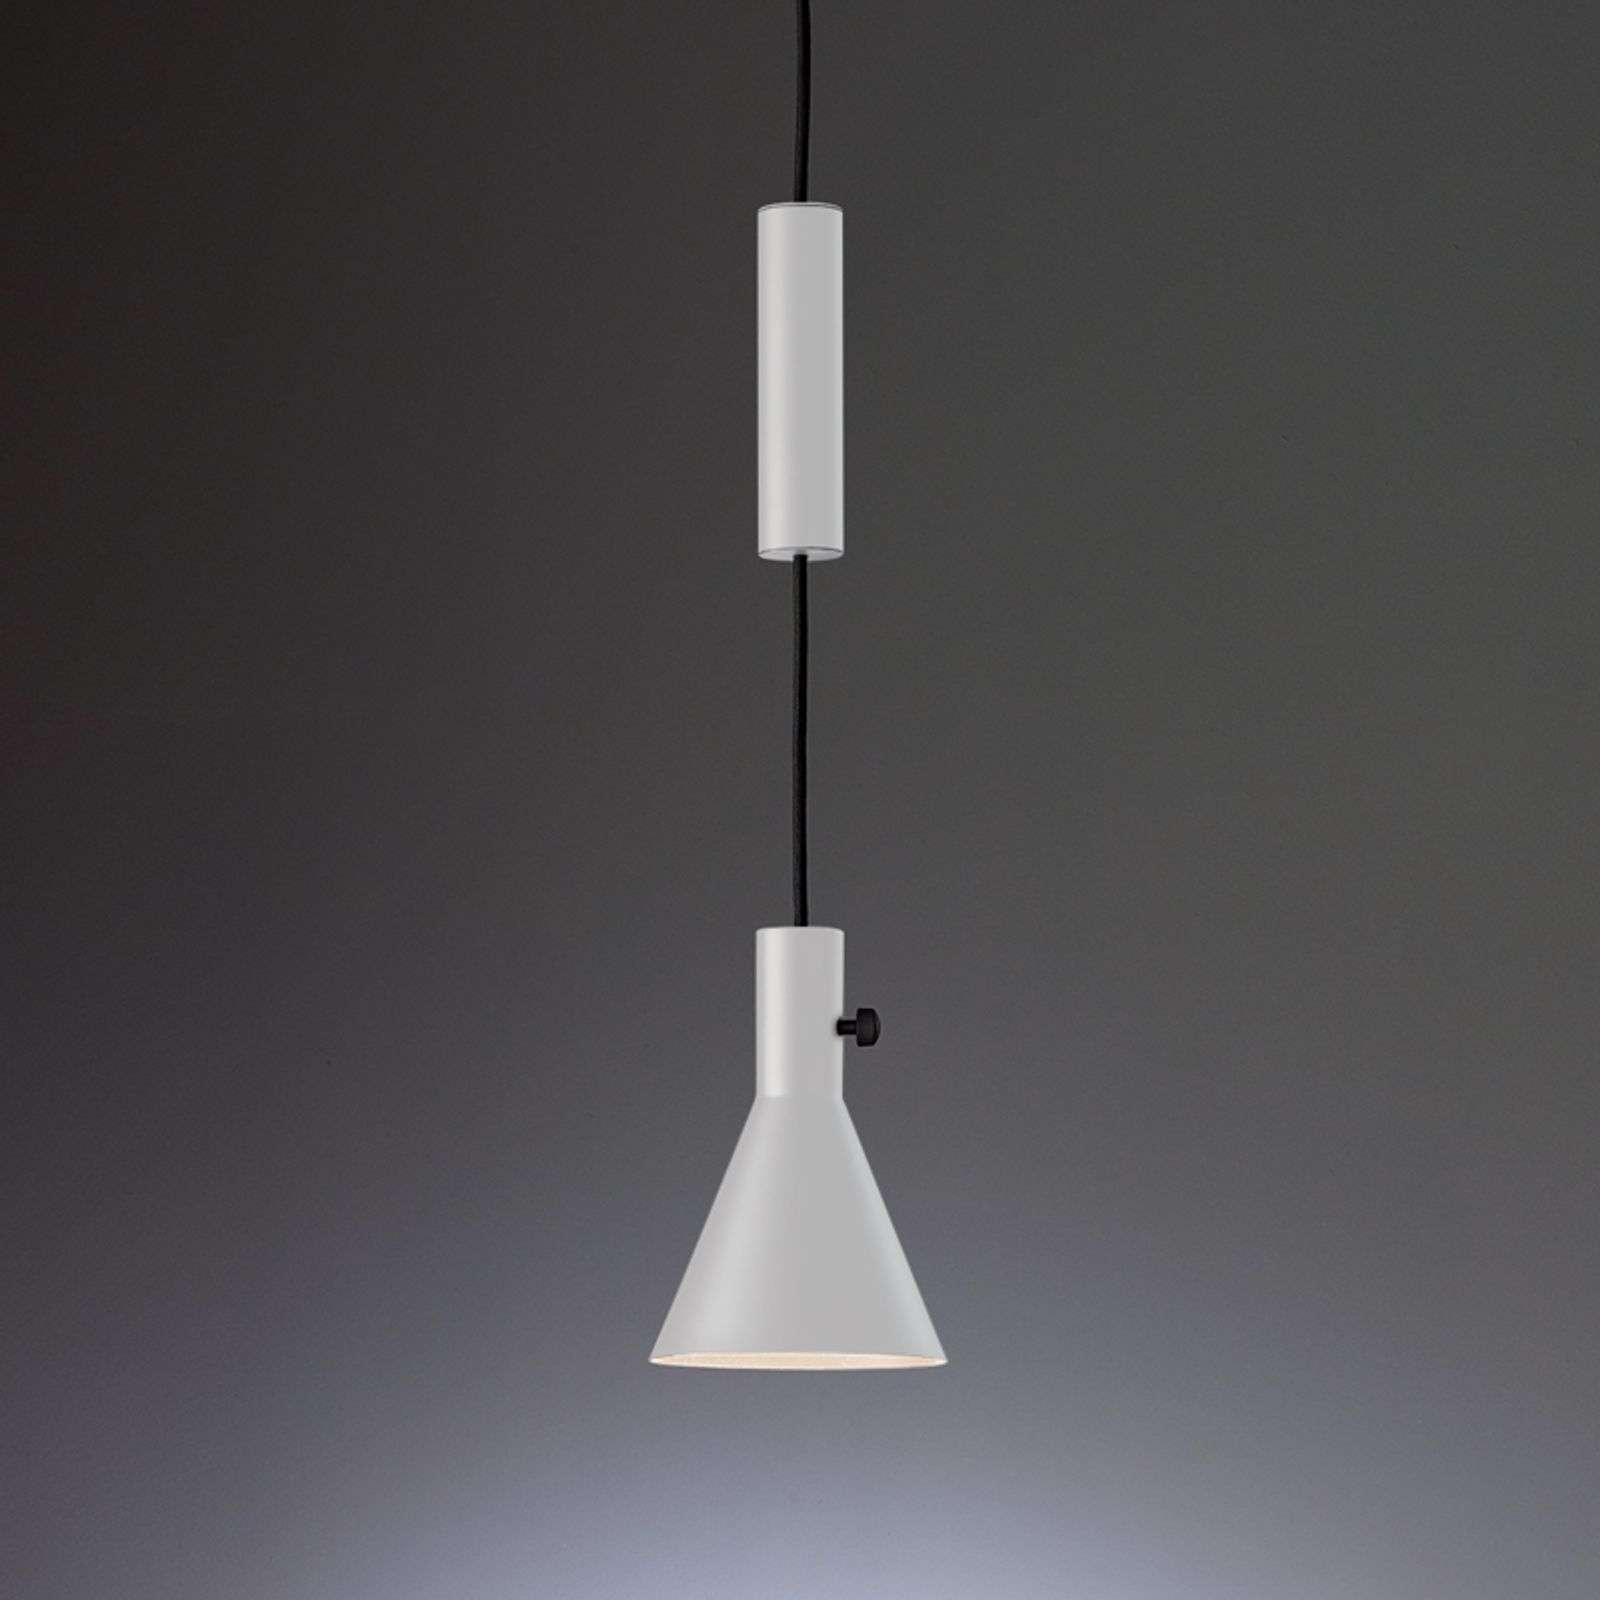 Suspension LED de designer blanche Eleu